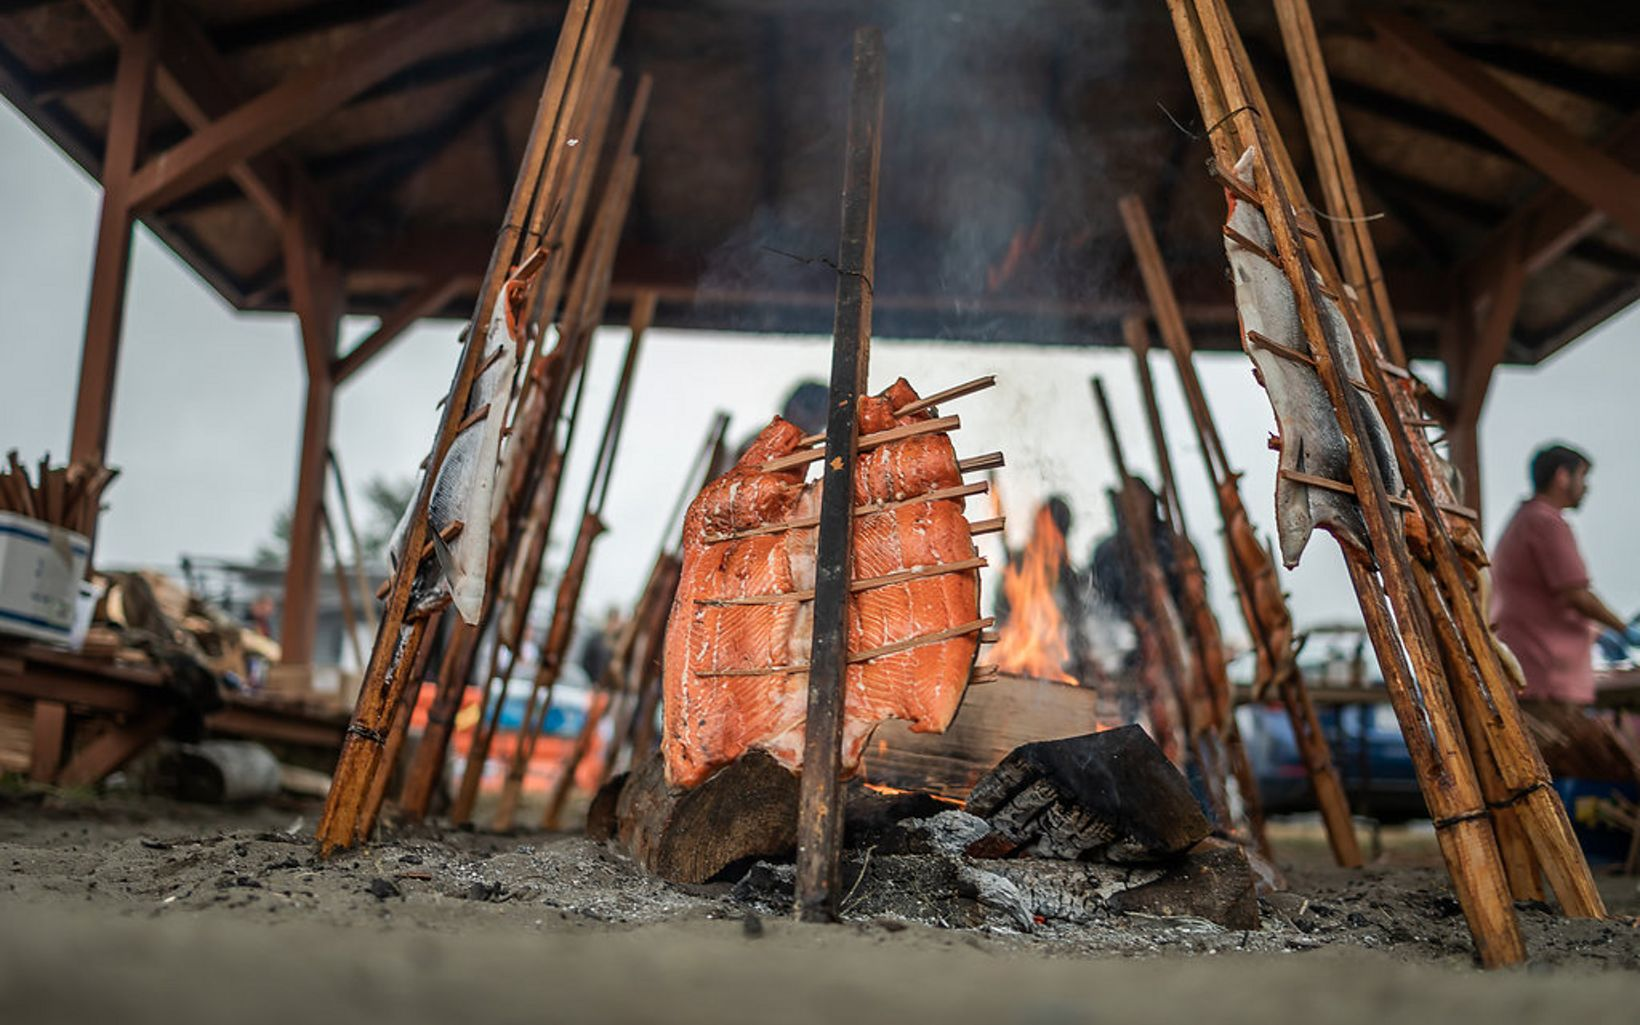 mount salmon on cedar pikes for slow smoking on the beach in Neah Bay. This ancestral method is handed down to each generation and honors the salmon for its pivotal role.